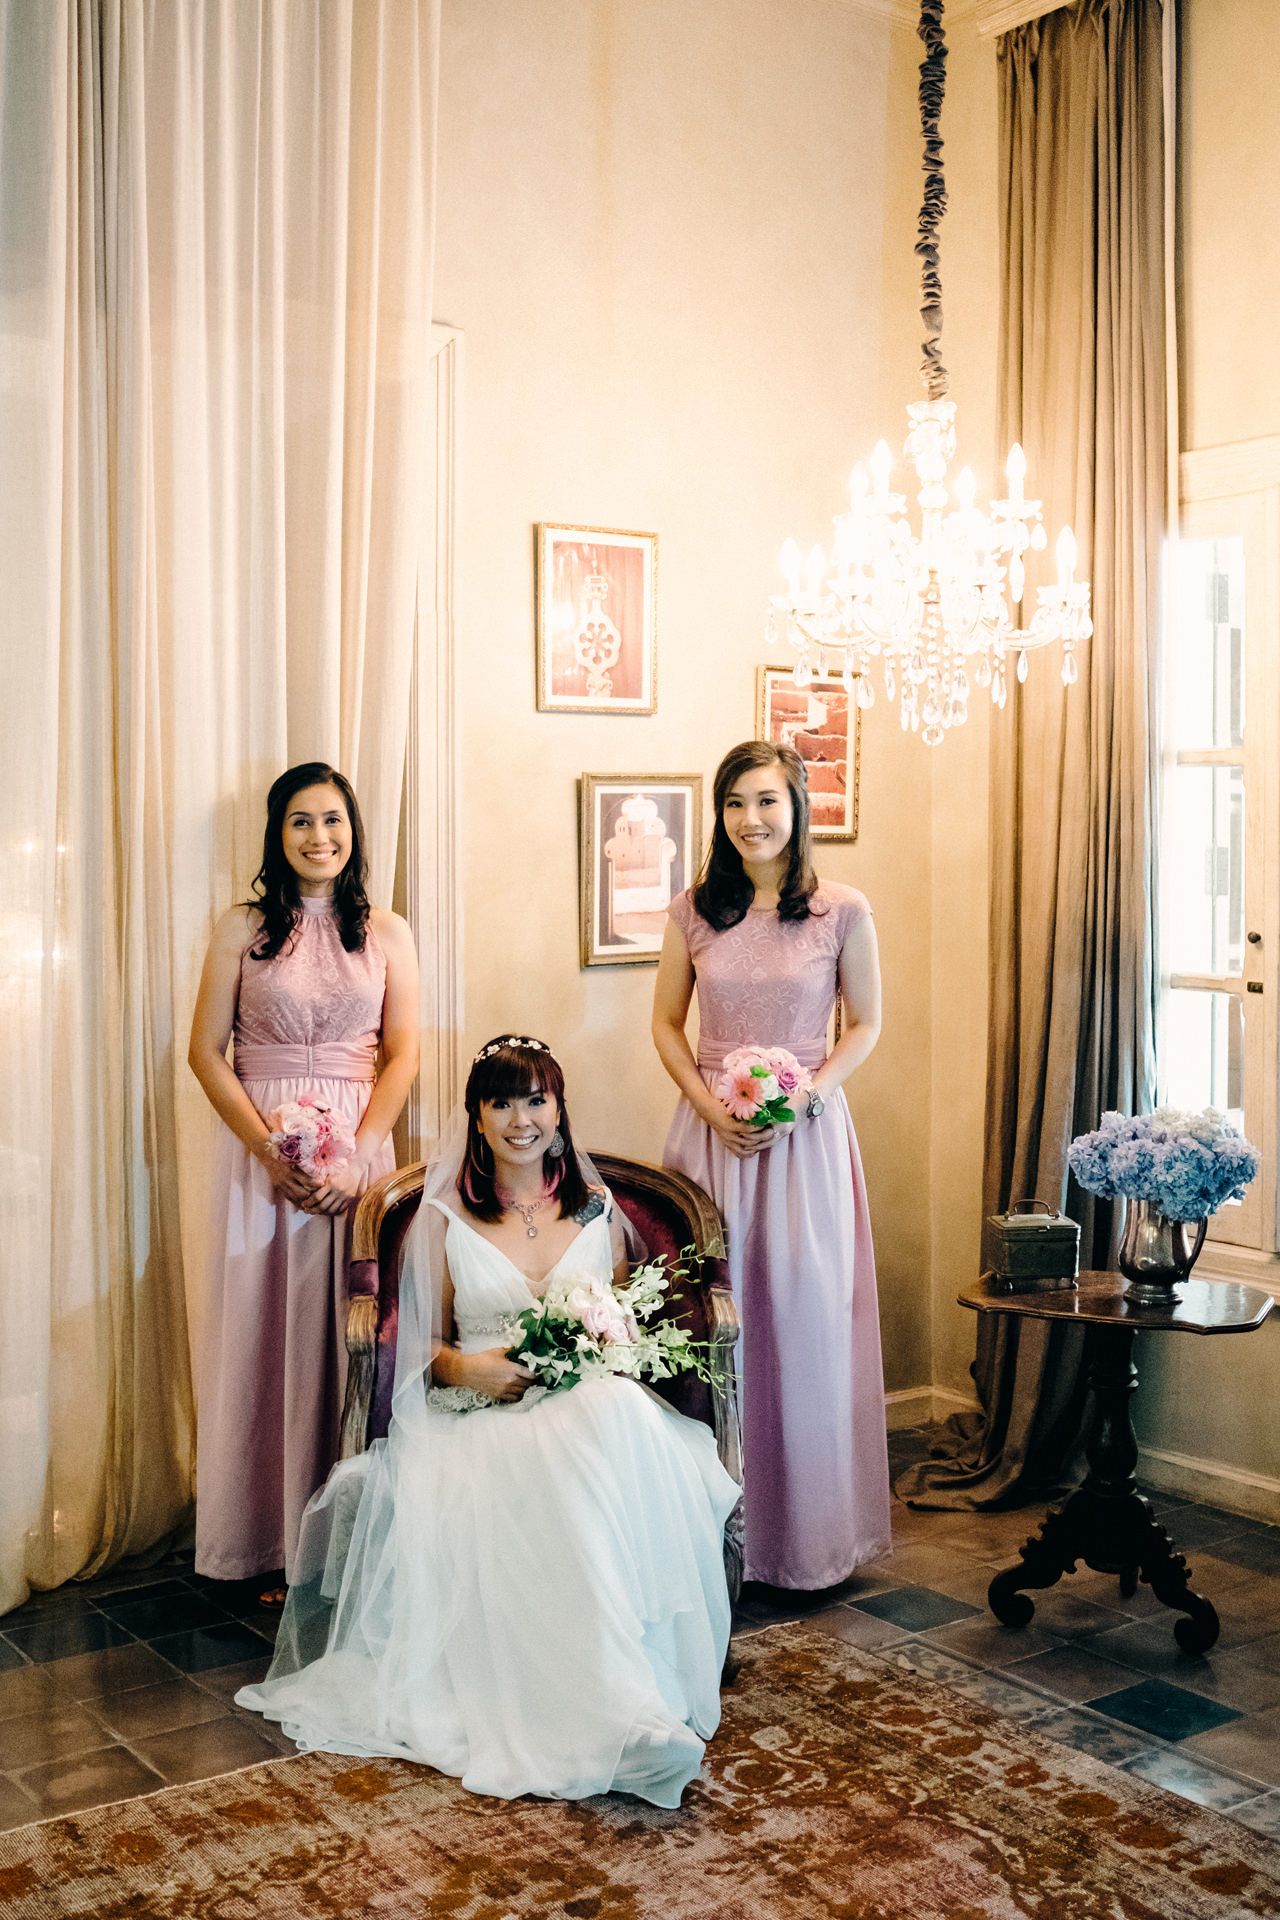 The Wedding of Bayu and Ivony at Gorgeous Bali Wedding Venue 12